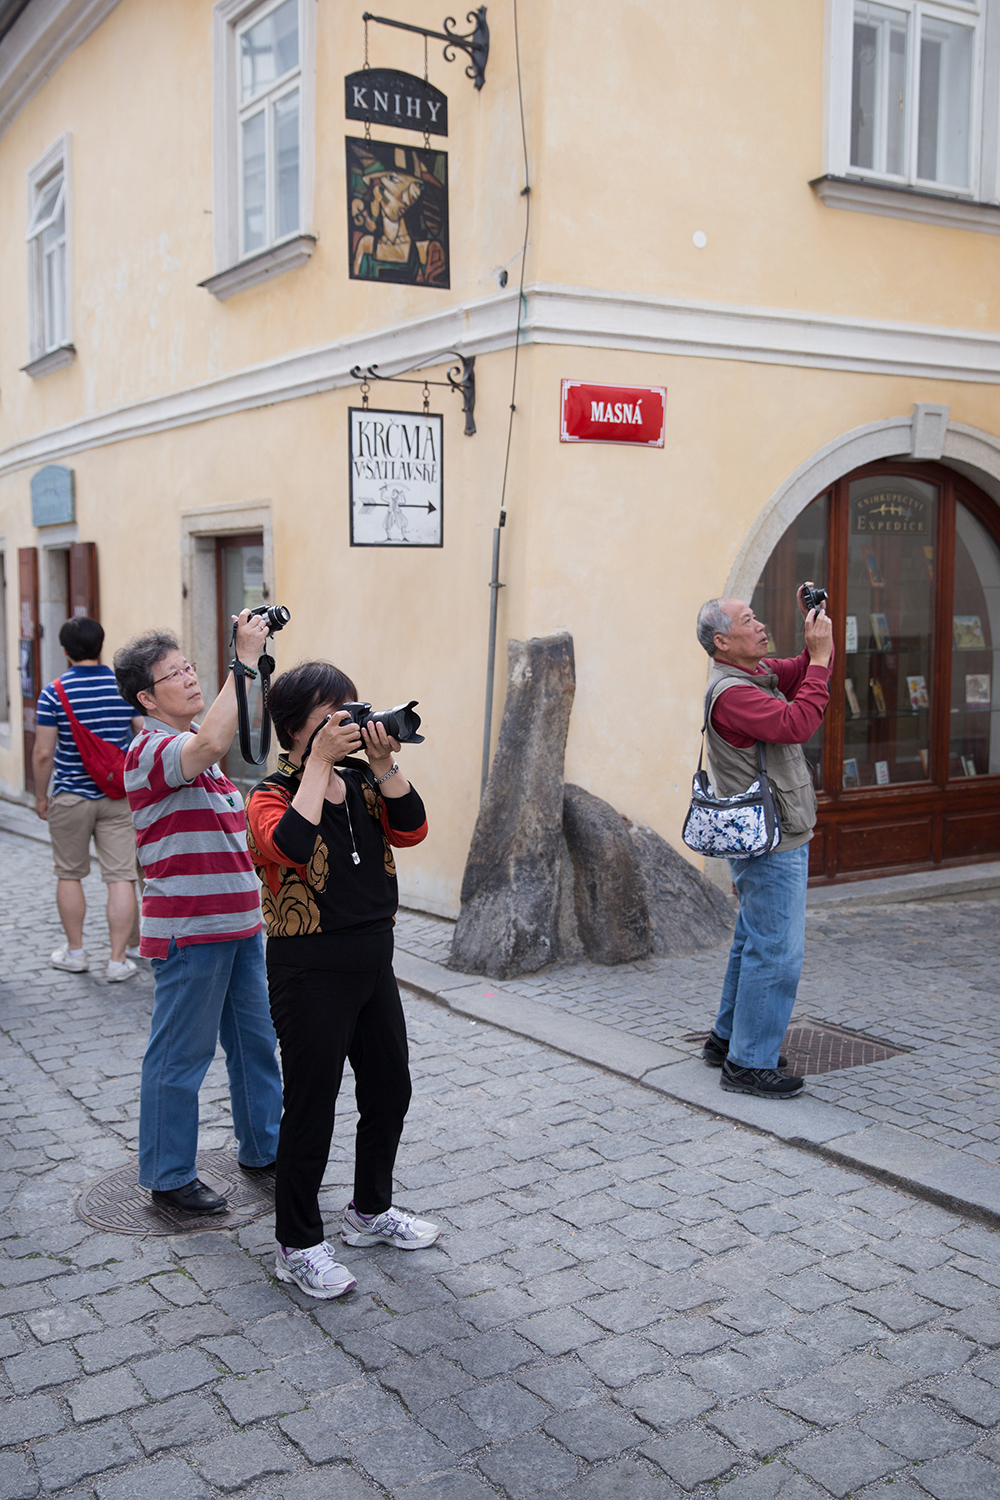 A documentary photograph of tourist taking photographs in the streets of cesky krumlov, czech republic